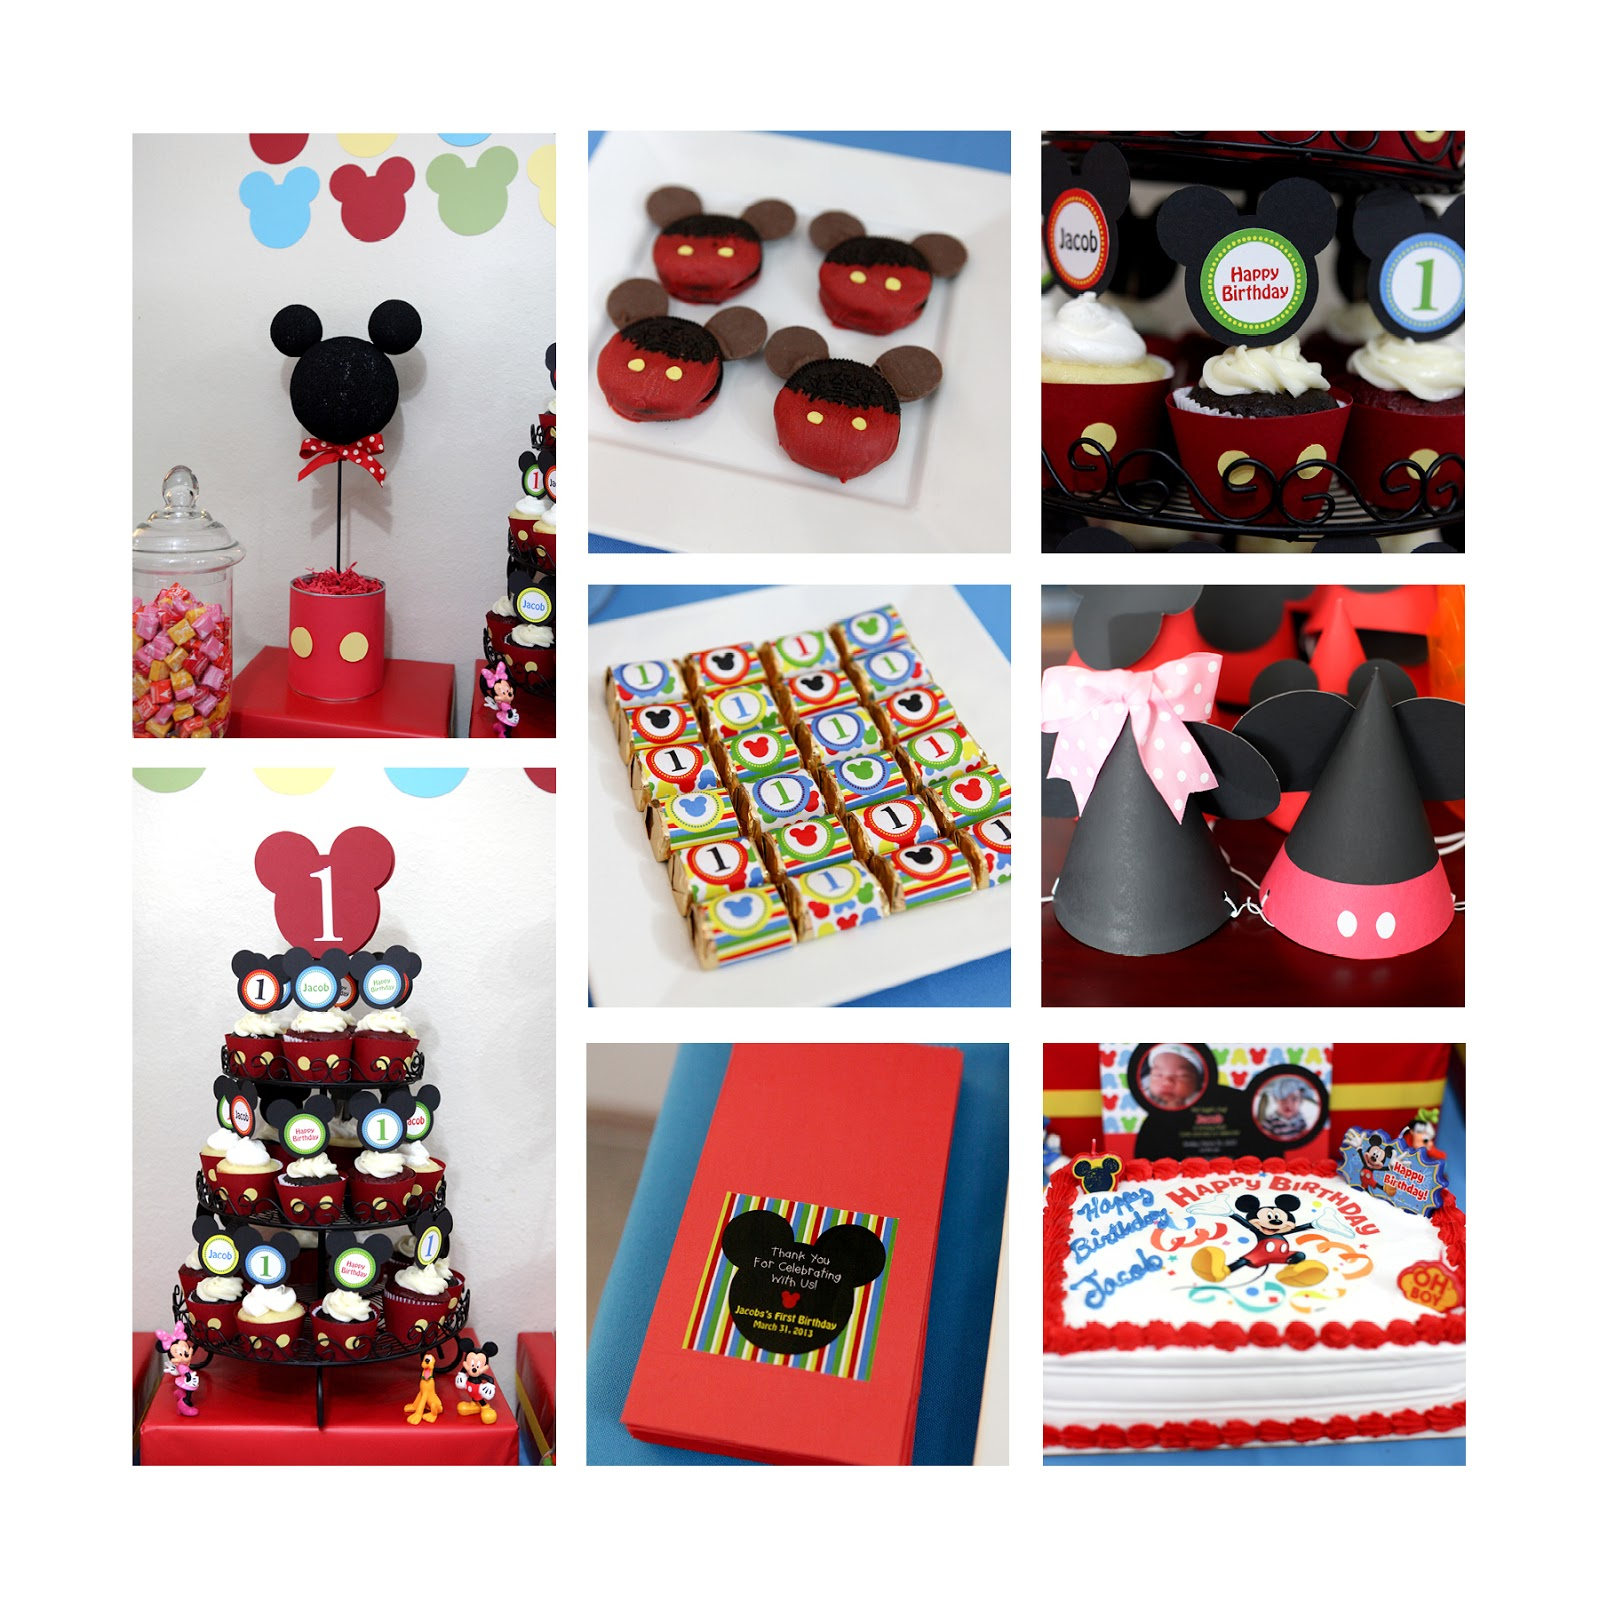 Here are the Mickey Invitations we created. To order these you can go ...